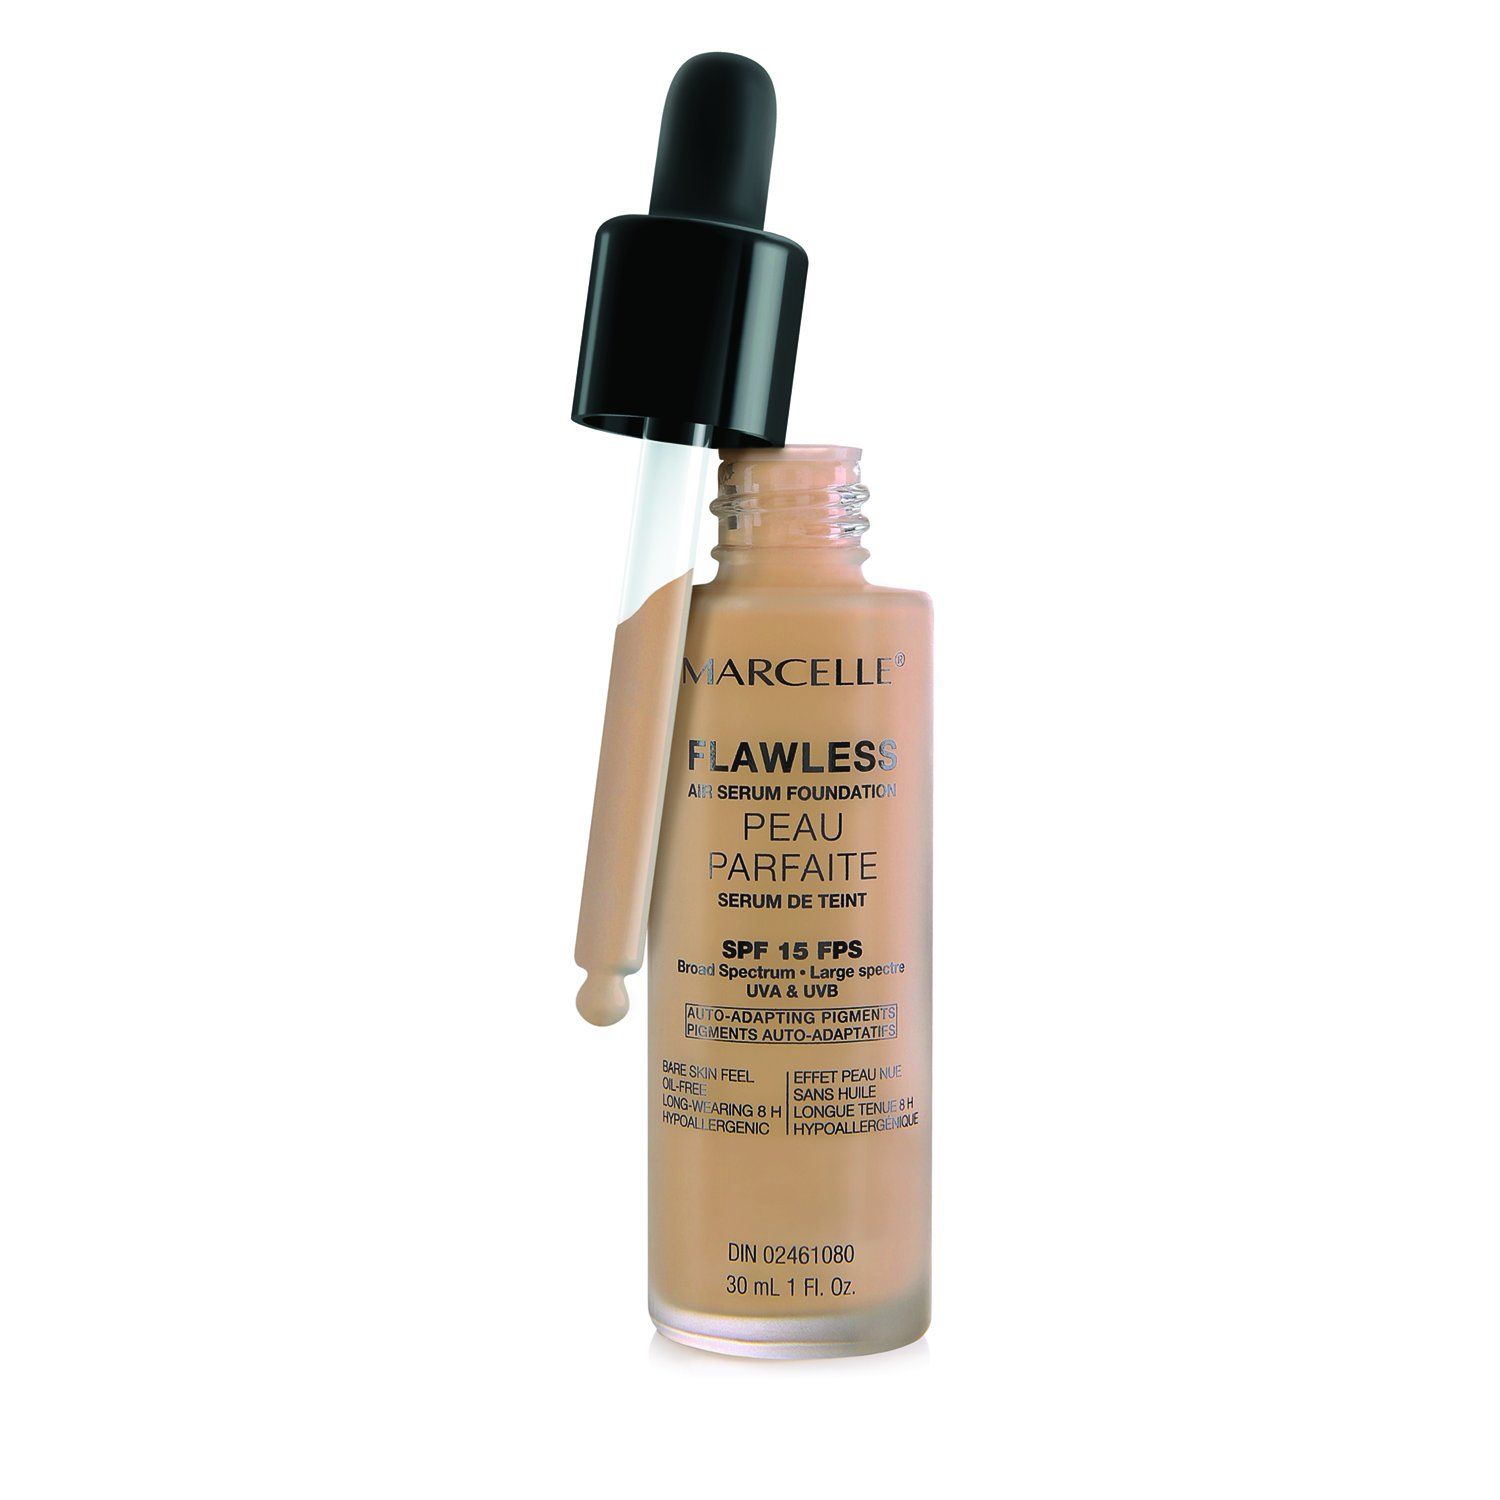 Marcelle Hypoallergenic and Fragrance-Free Flawless Air Serum Foundation SPF15 Natural Beige Groupe Marcelle Inc.